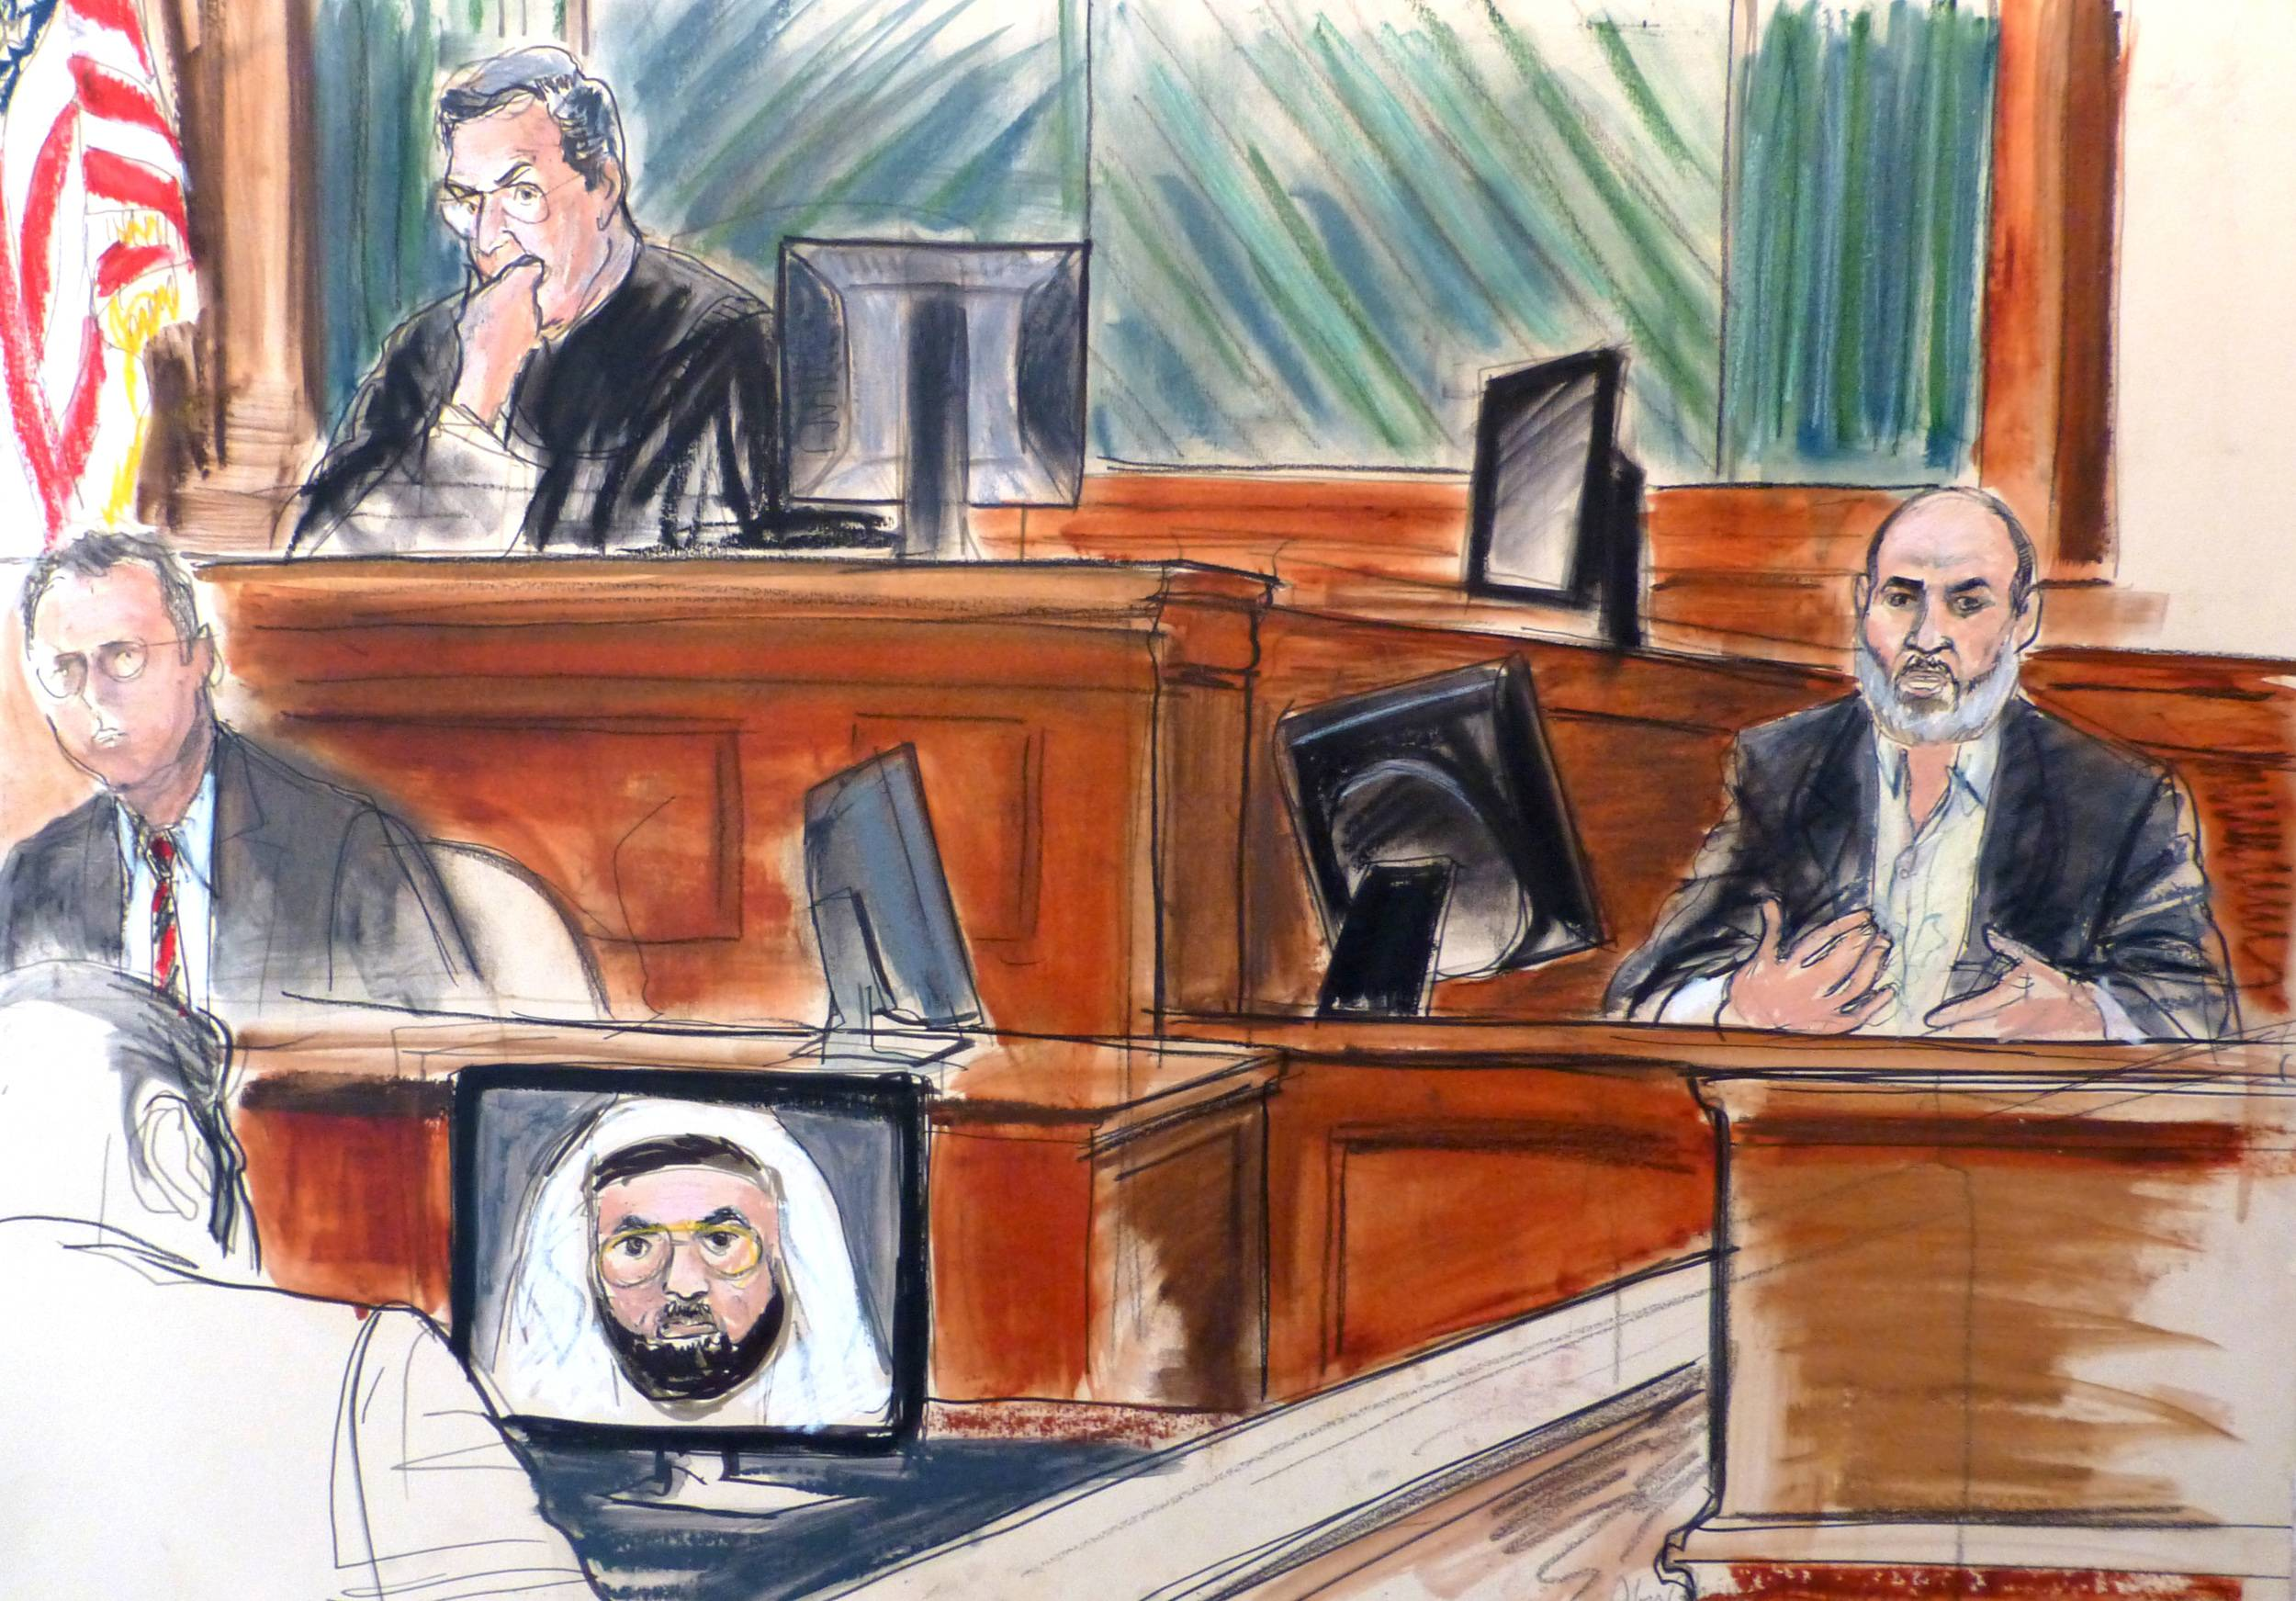 Osama bin Laden's son-in-law, Sulaiman Abu Ghaith, right, was sentenced Tuesday to life in prison for acting as al-Qaida's spokesman after the Sept. 11 terror attacks.